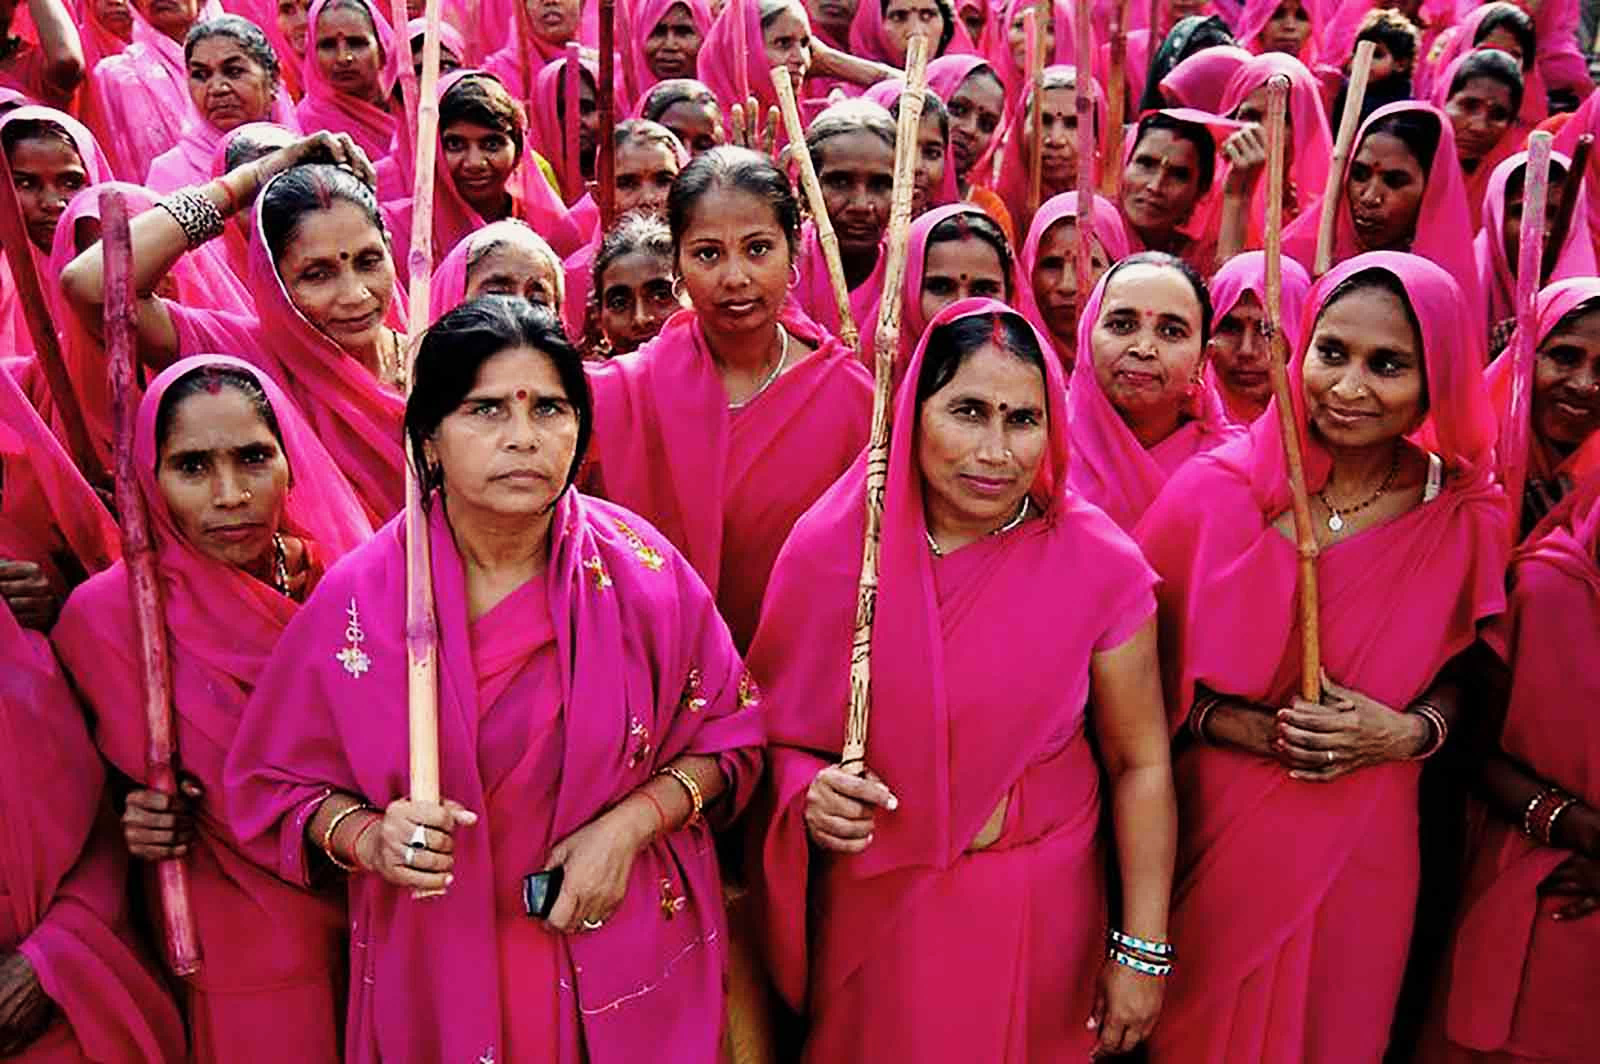 Sabarimala Controversy: Paving the Way for Feminism in India?